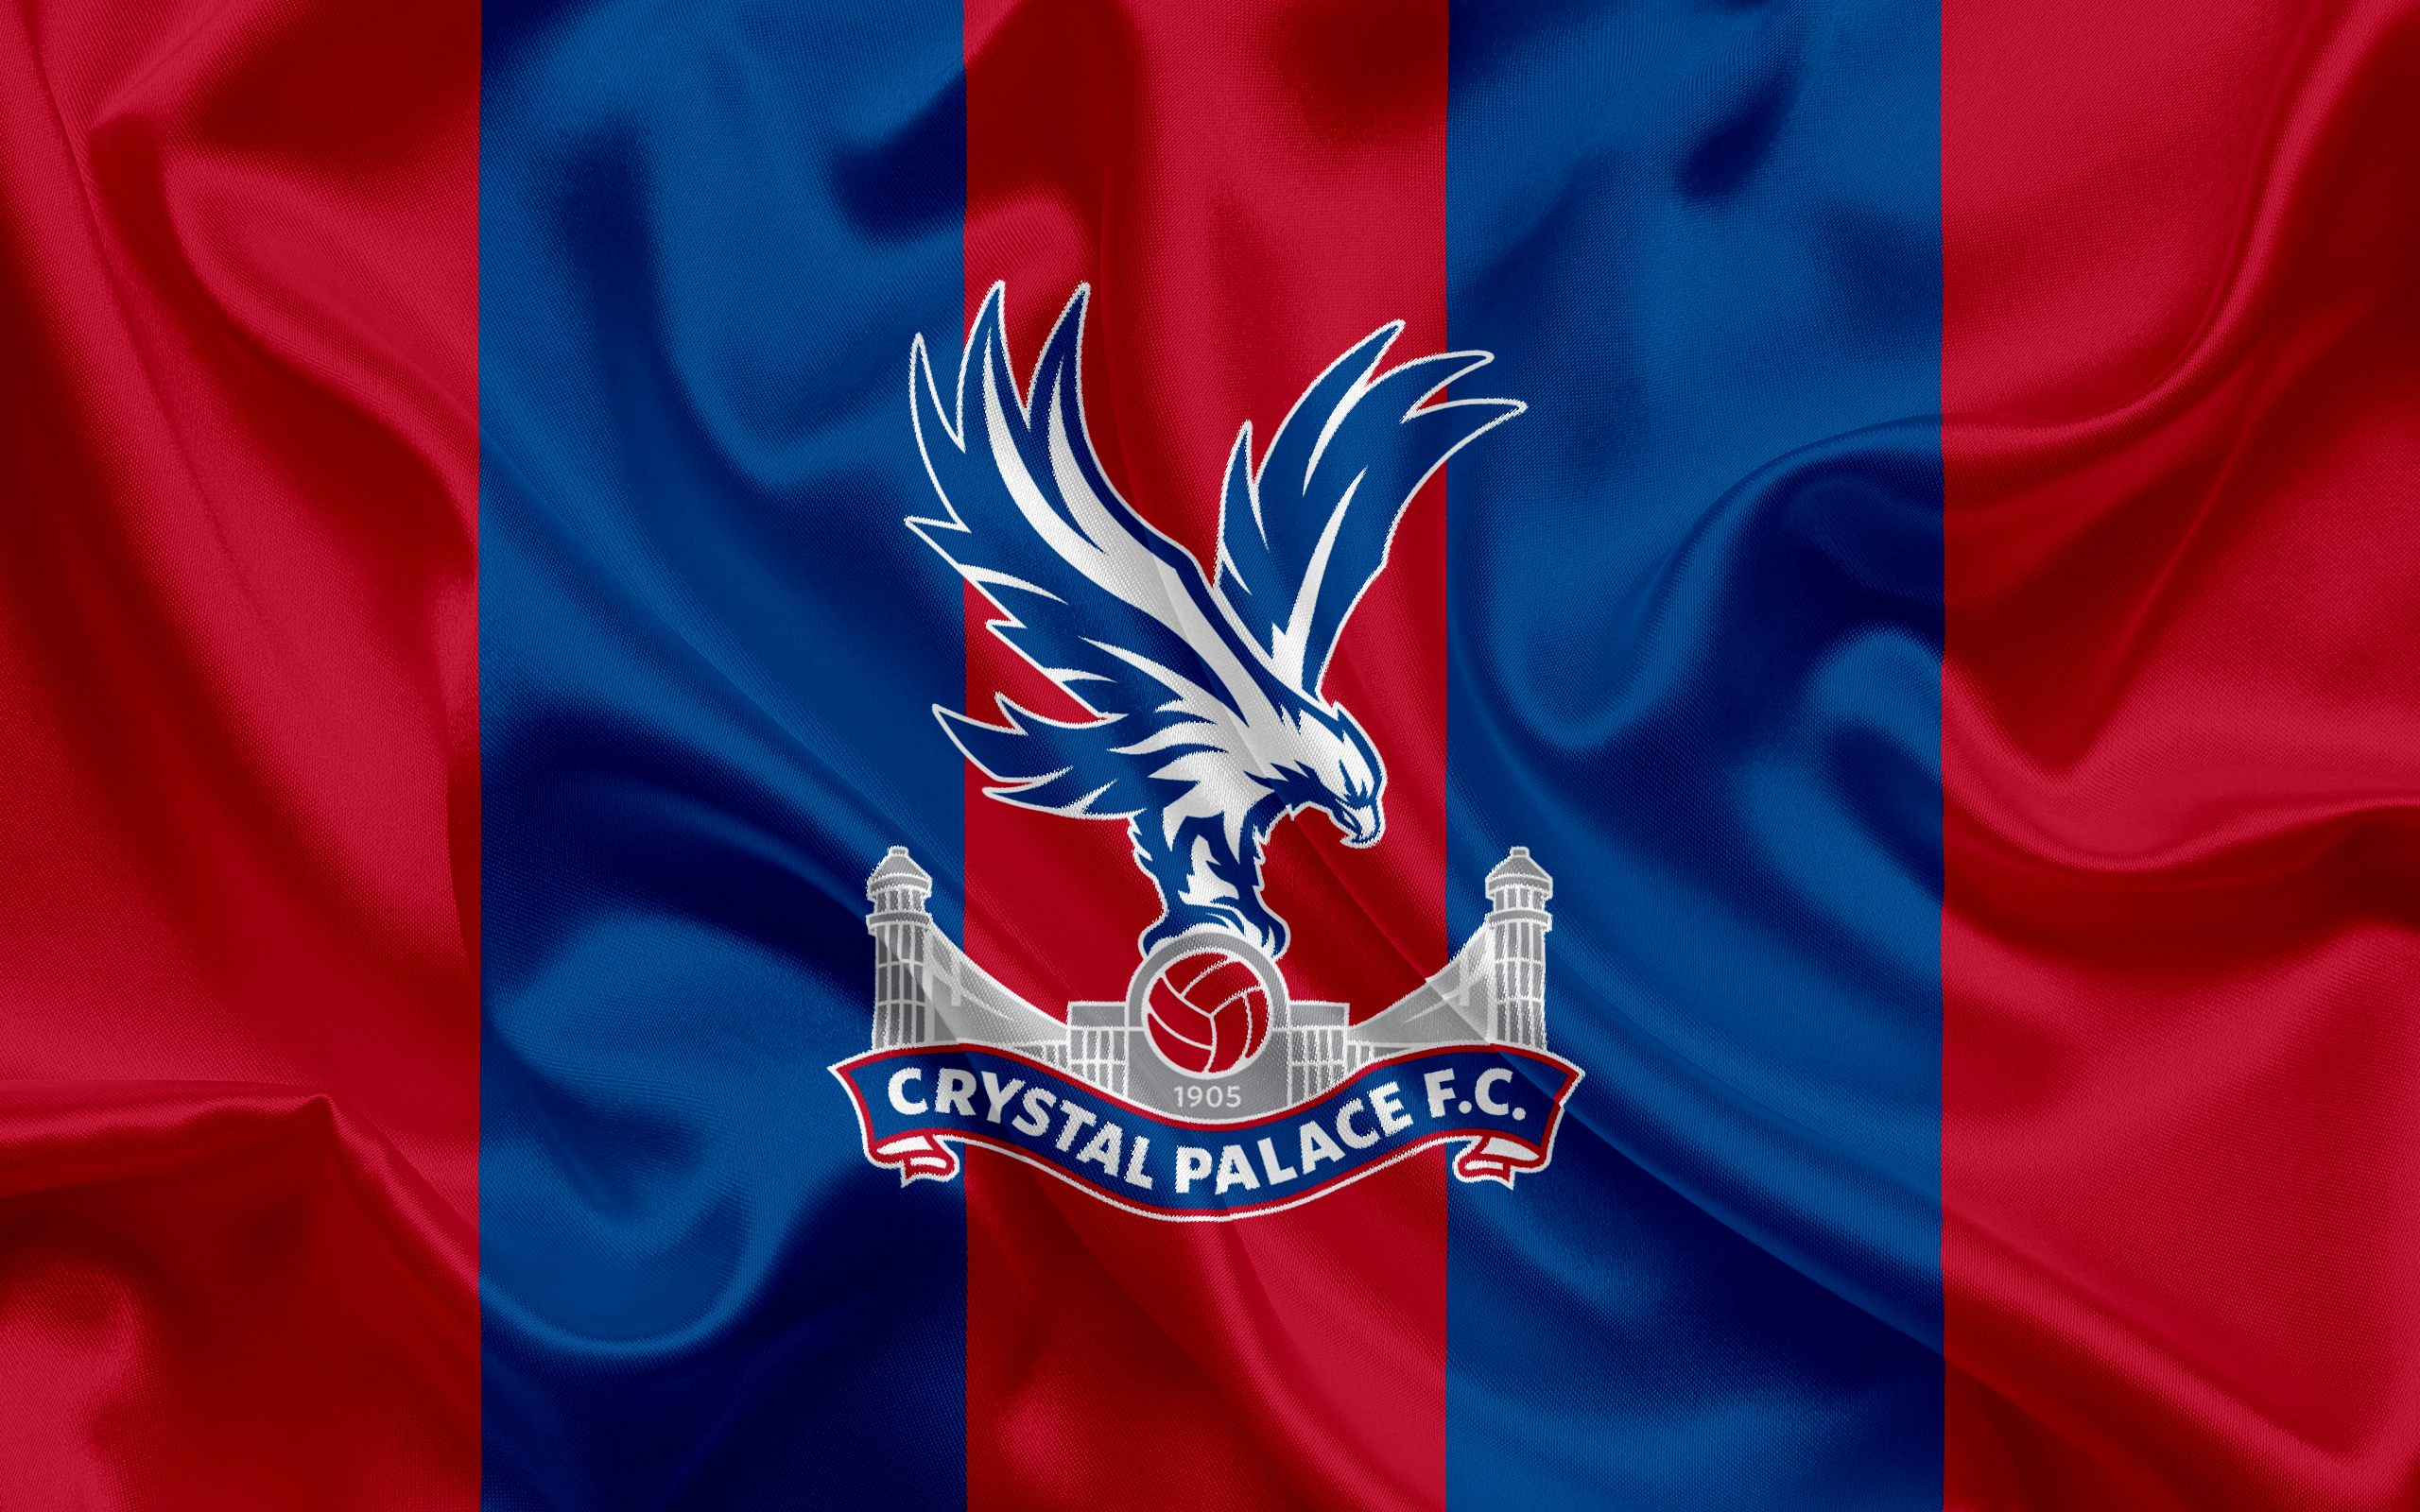 Download wallpapers Crystal Palace FC, Football Club ...